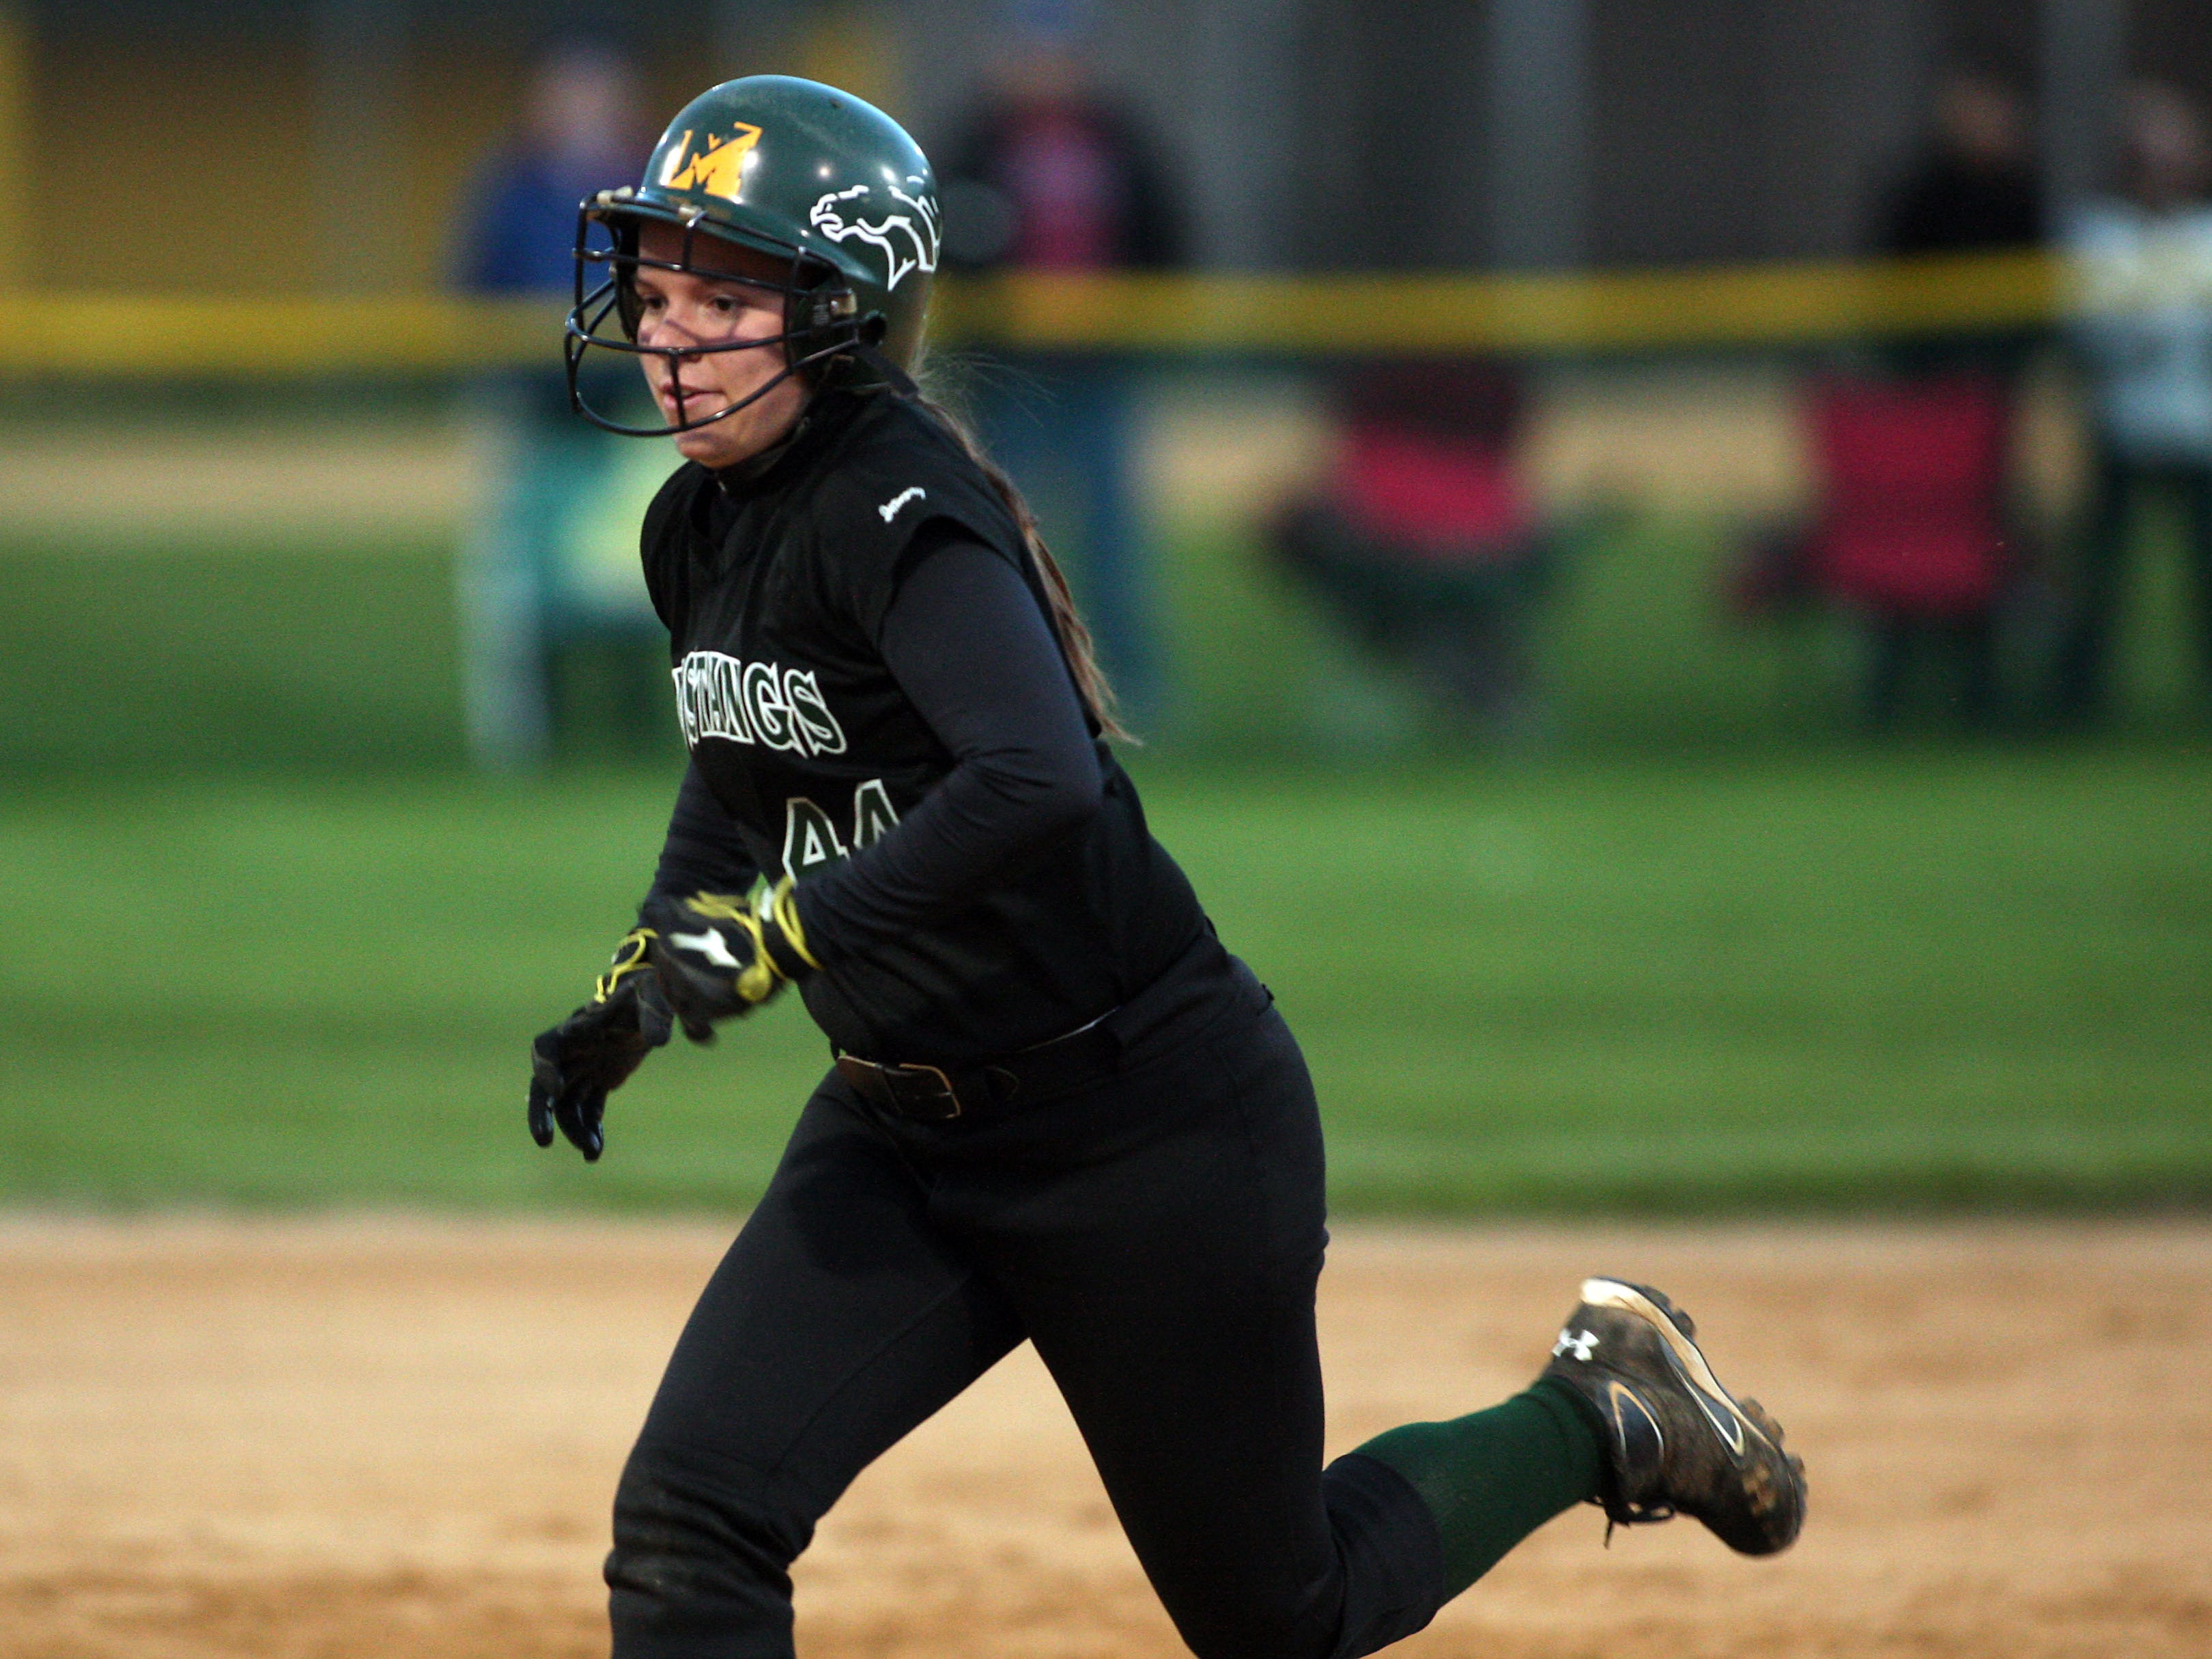 Sammie Booth became Montville's all-time hits leader when she collected hit No. 118 in a loss to DePaul on April 9.